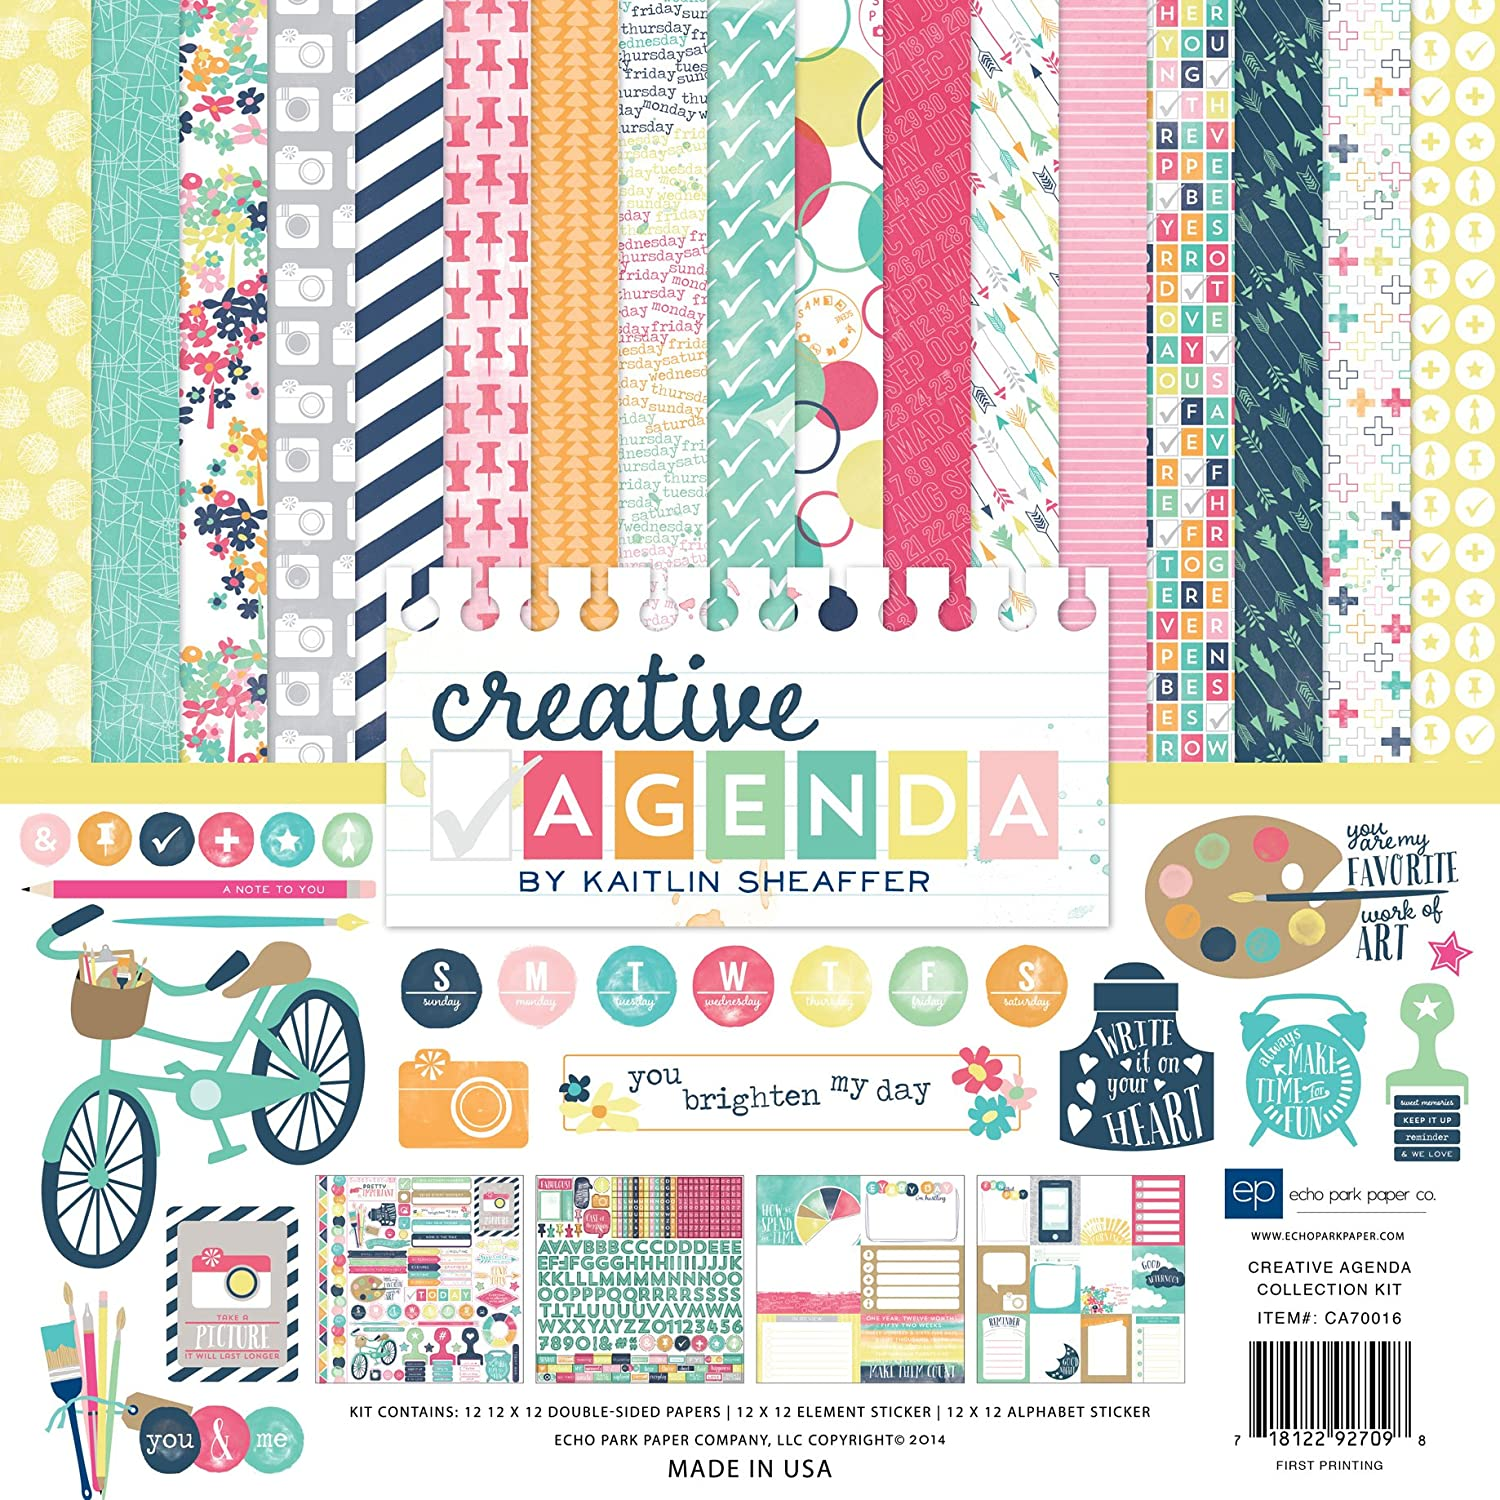 http://www.amazon.com/Echo-Park-Paper-Collection-Scrapbooking/dp/B00M3401E6